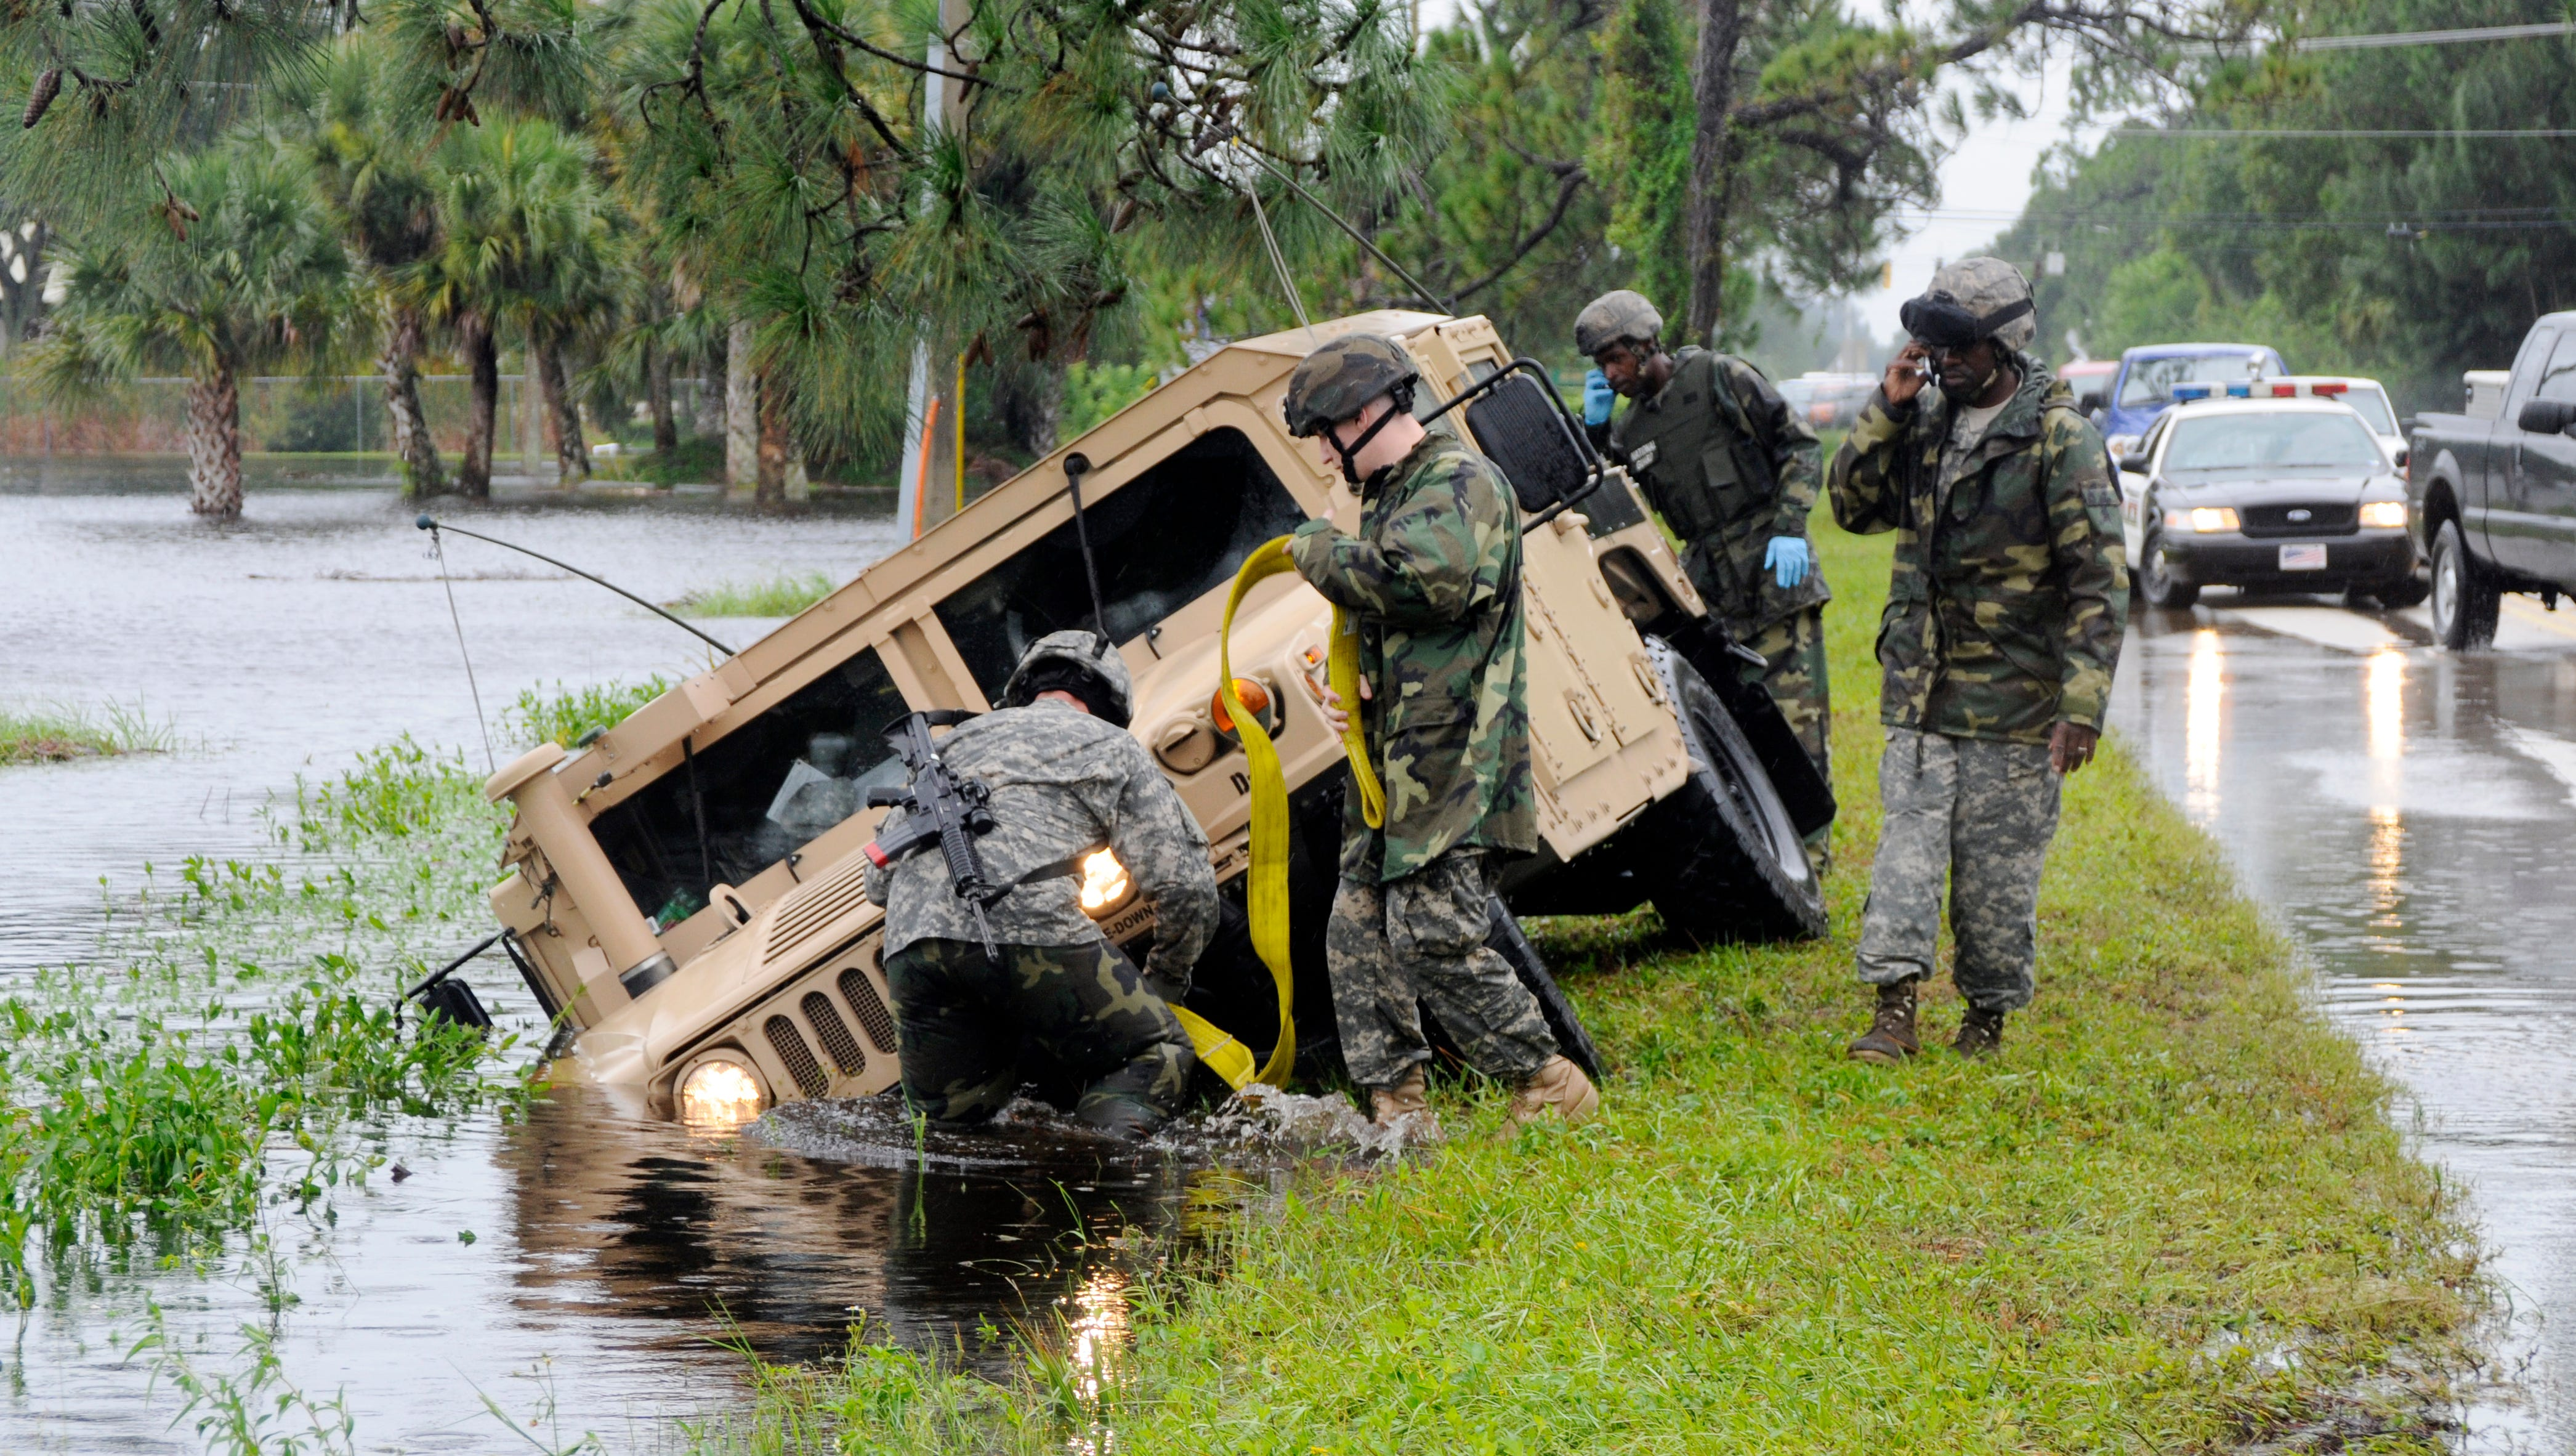 Tropical Storm Fay swamped the Space Coast 10 years ago with rampant rainfall, flooding